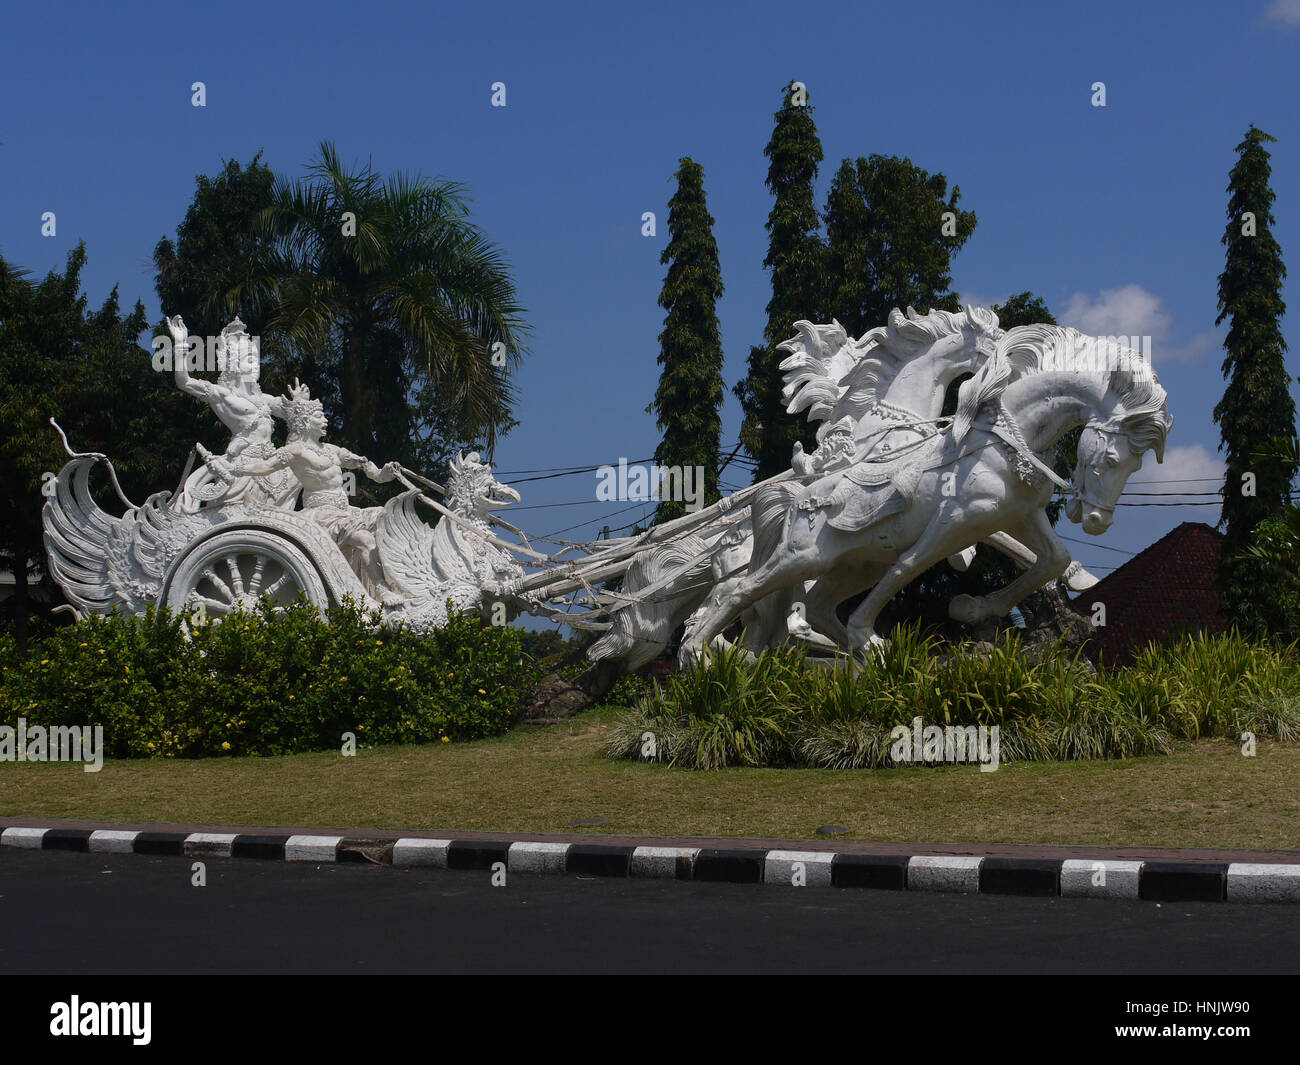 Arjuna and Krishna hindu gods riding chariot statue in Bali, Indonesia - Stock Image